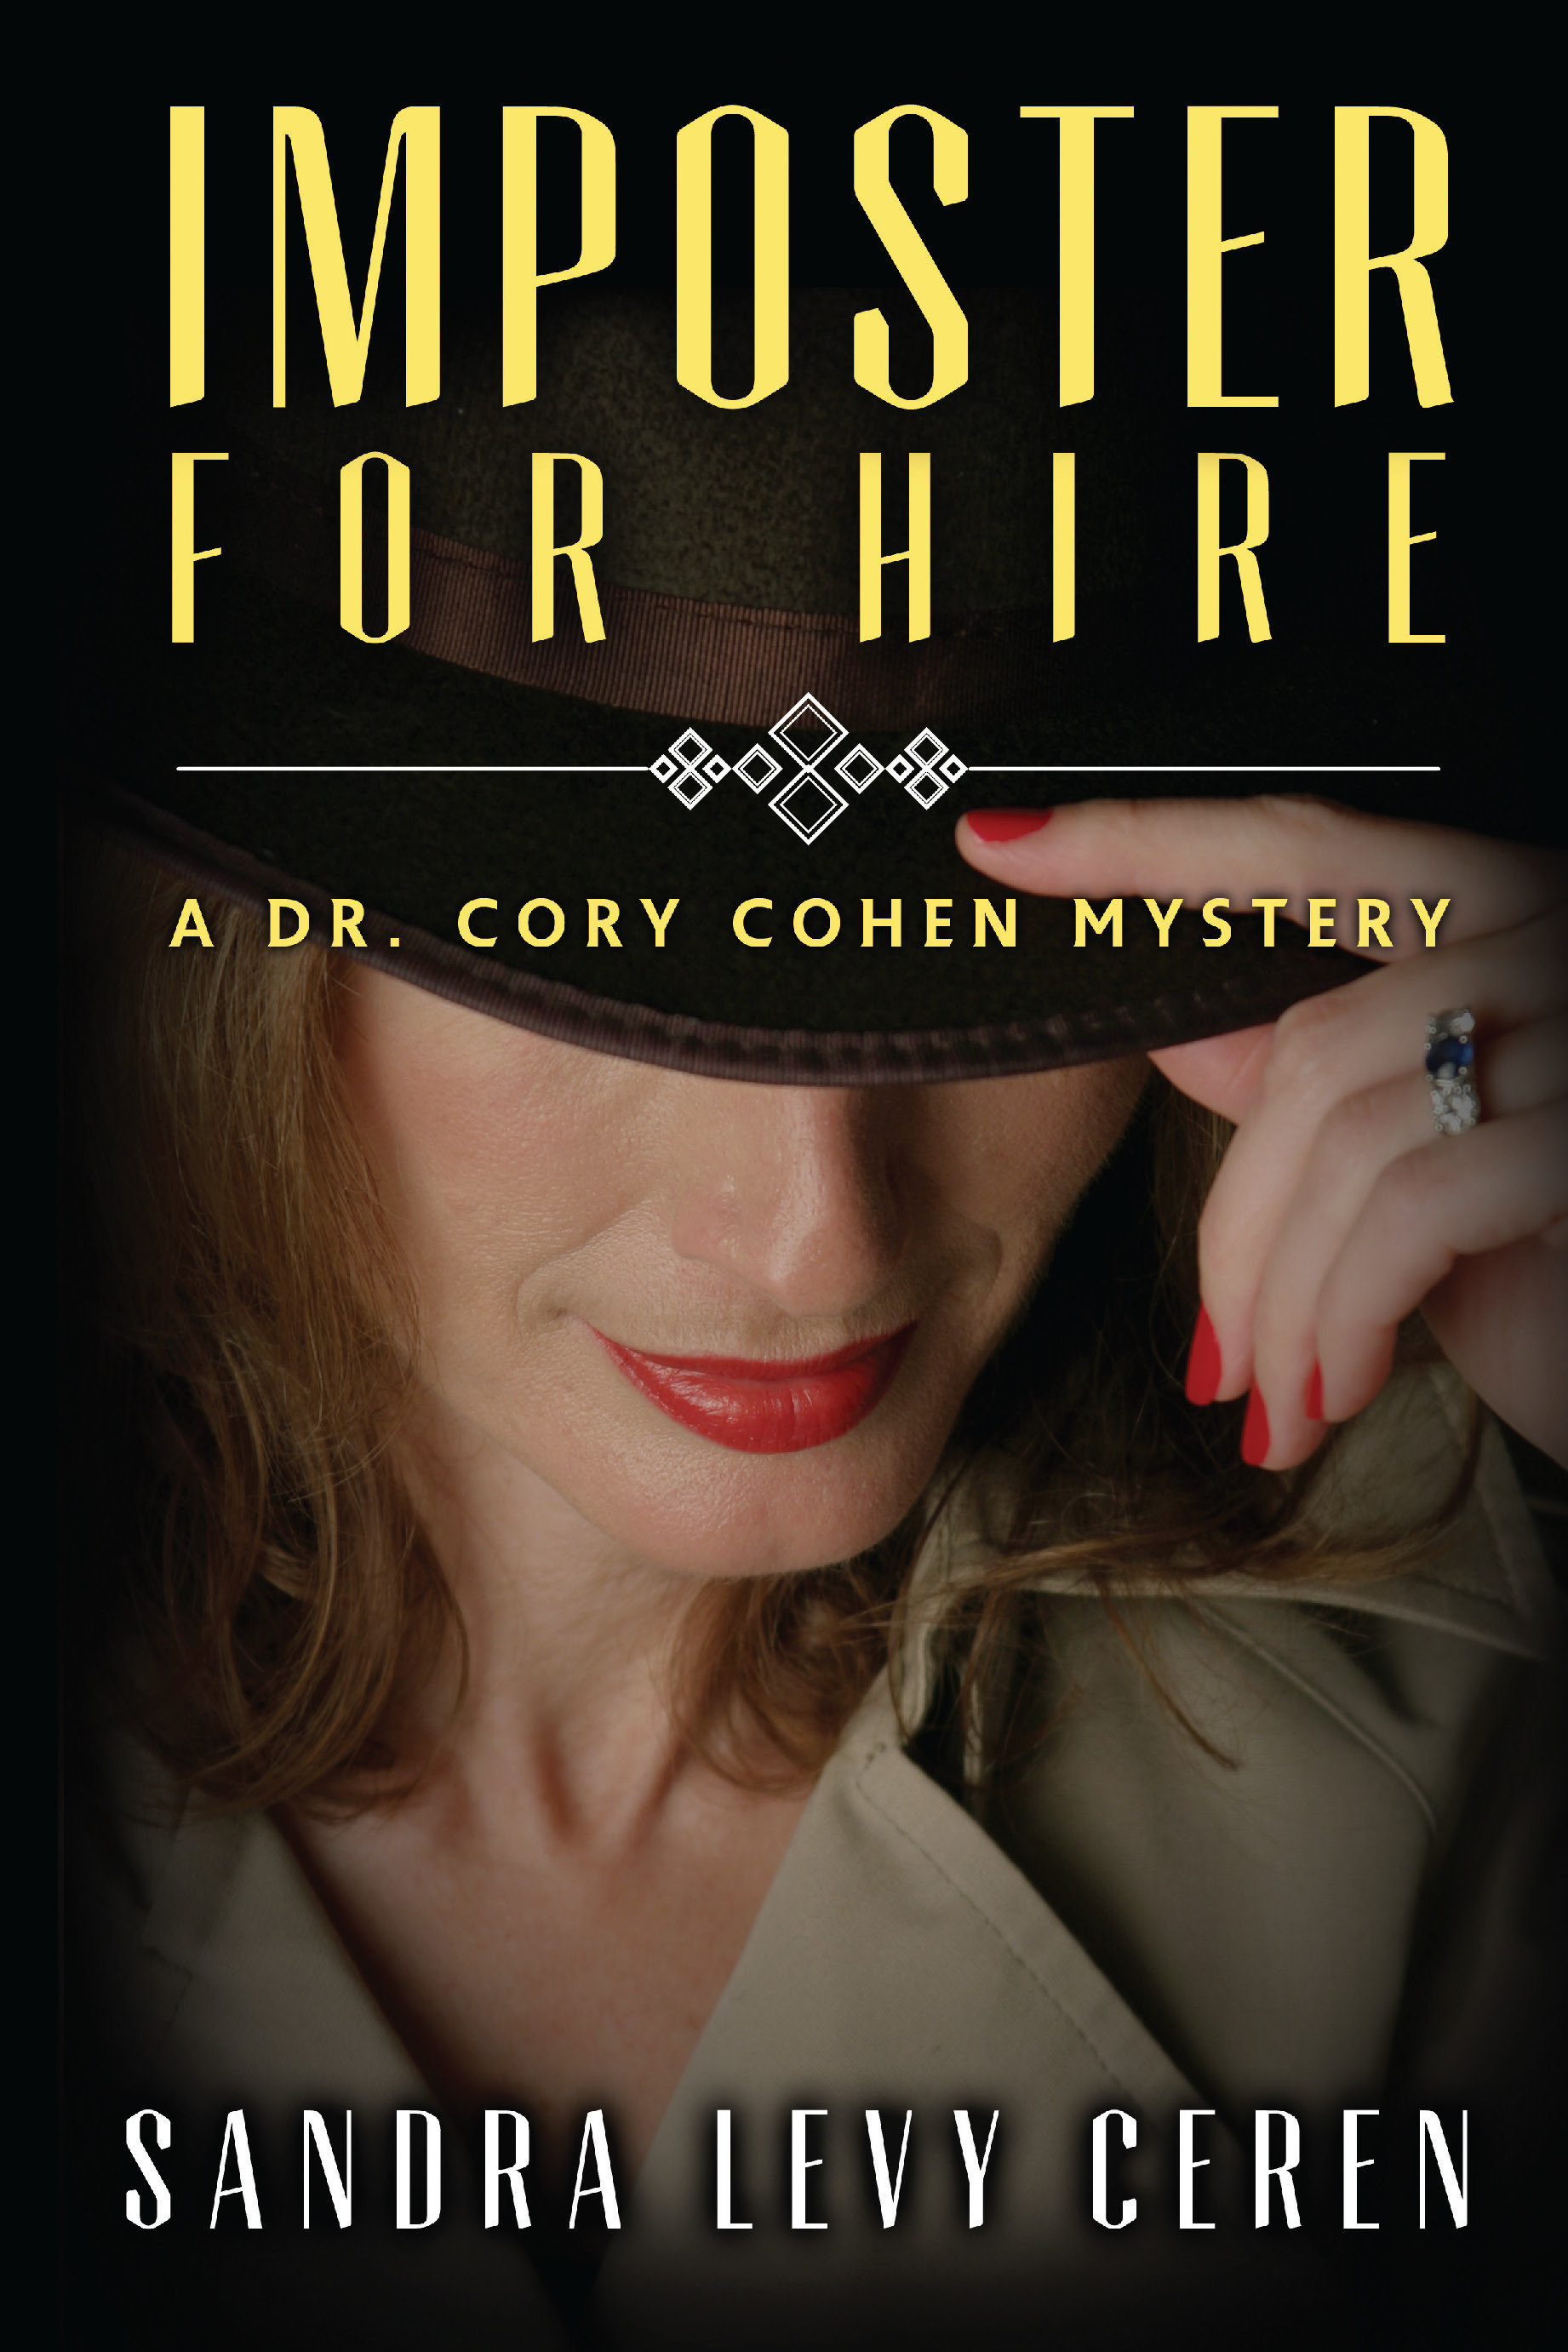 Imposter for Hire: A Dr. Corey Cohen Mystery 978-1-61599-142-6